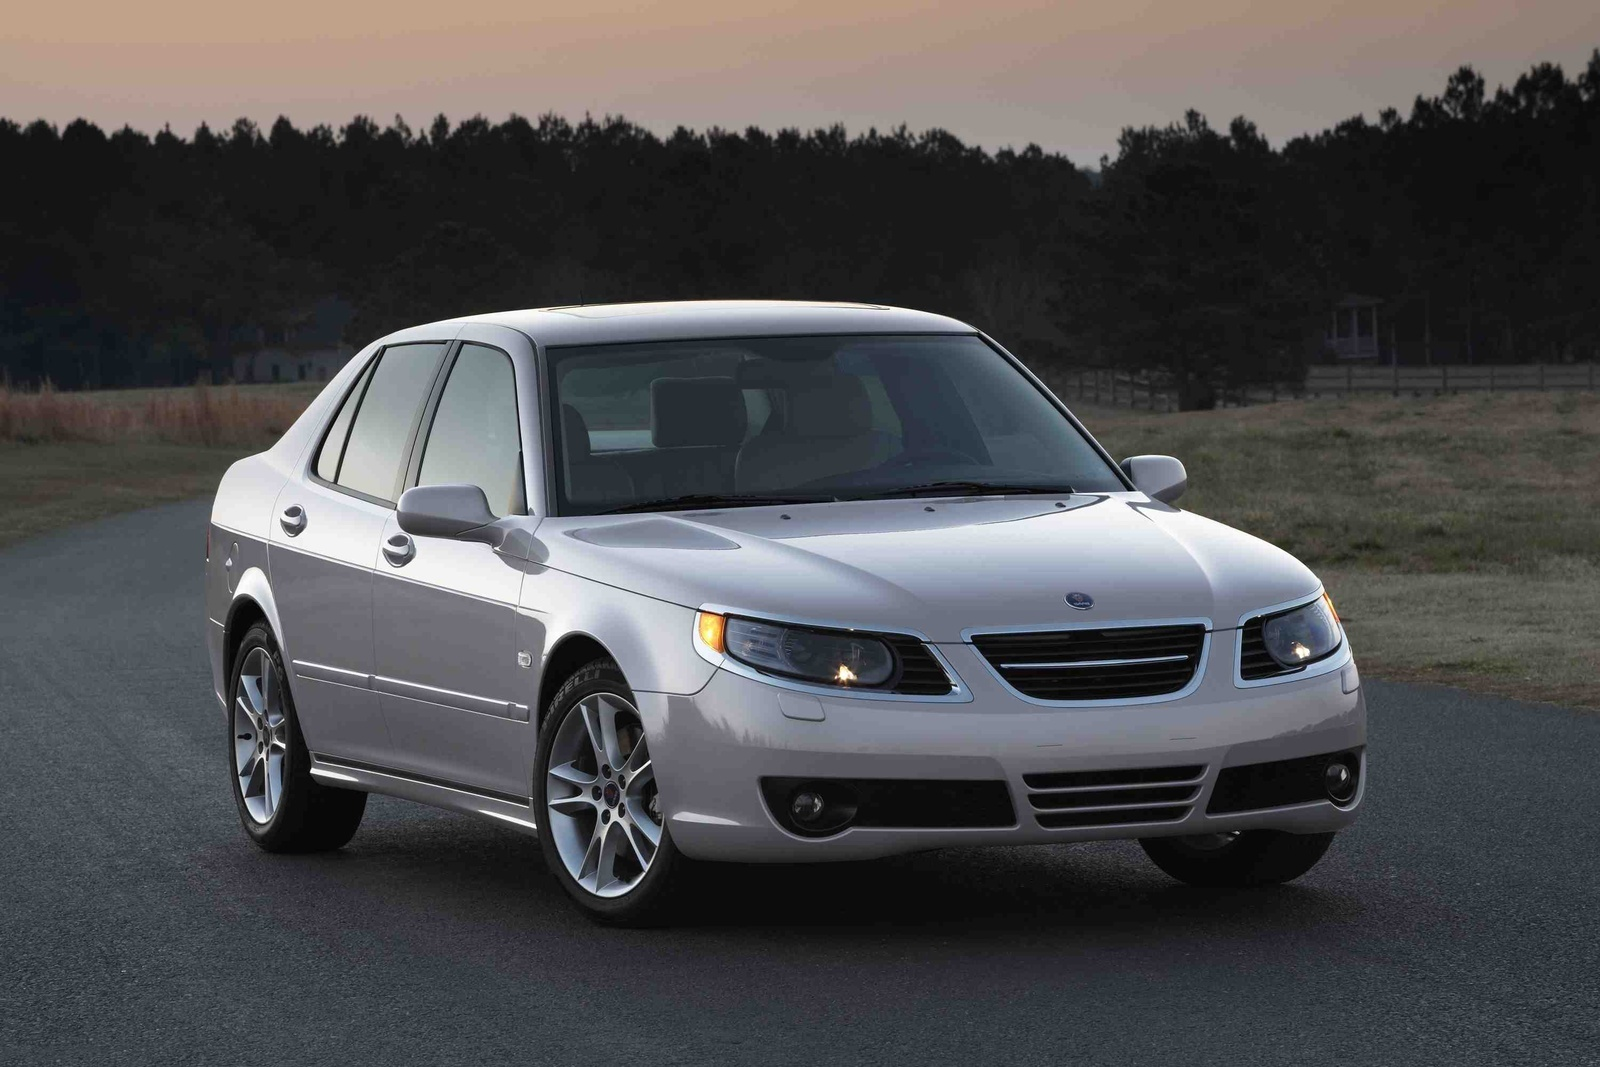 Picture of 2009 saab 9 5 aero exterior gallery_worthy